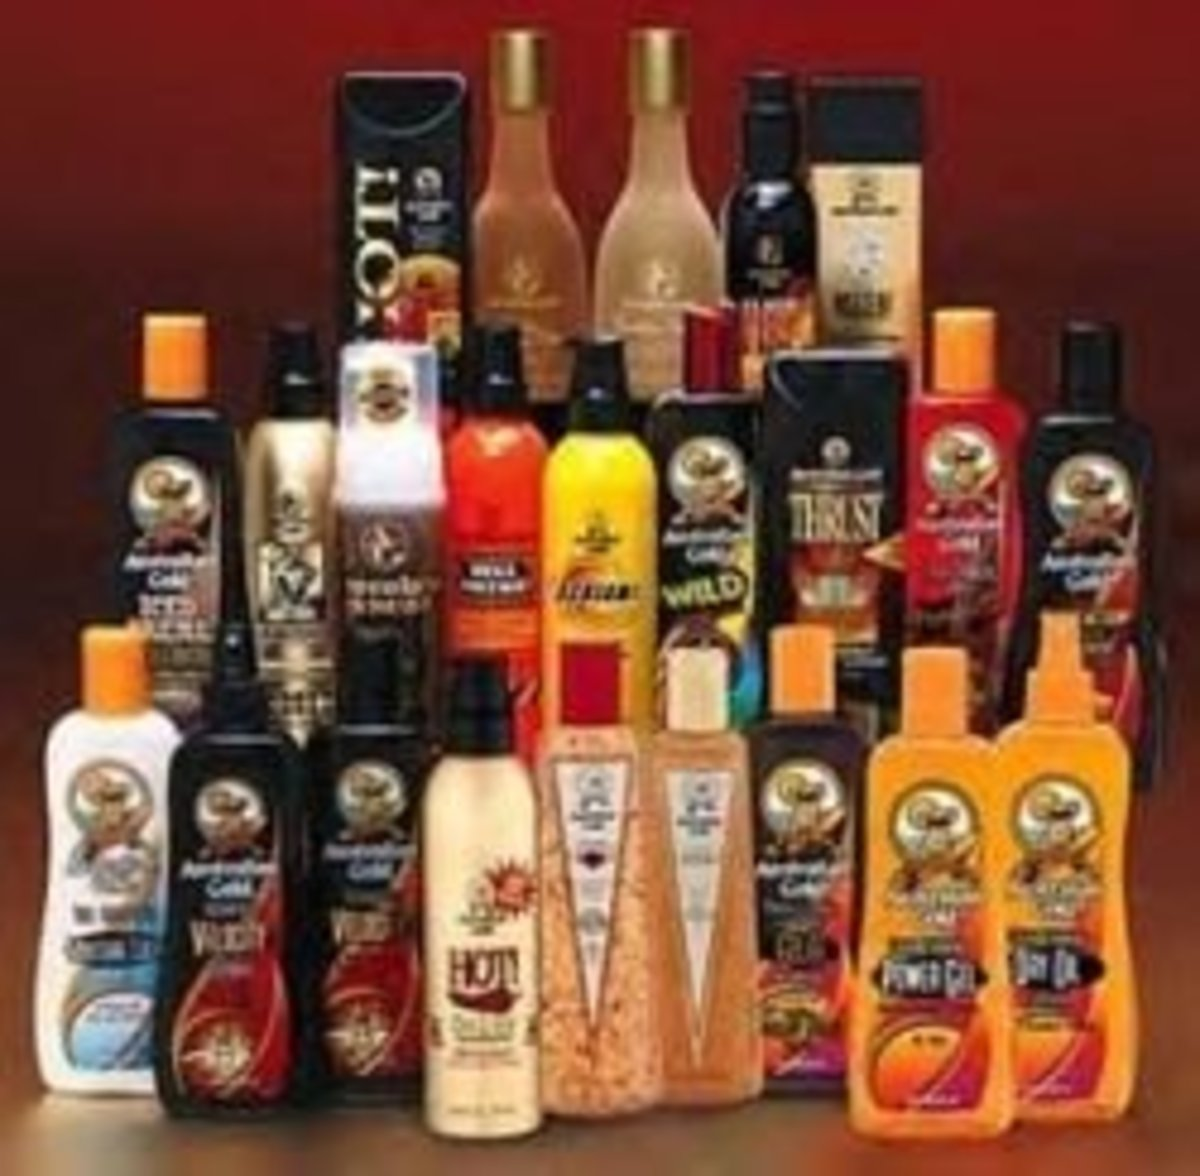 tanning lotions and sprays